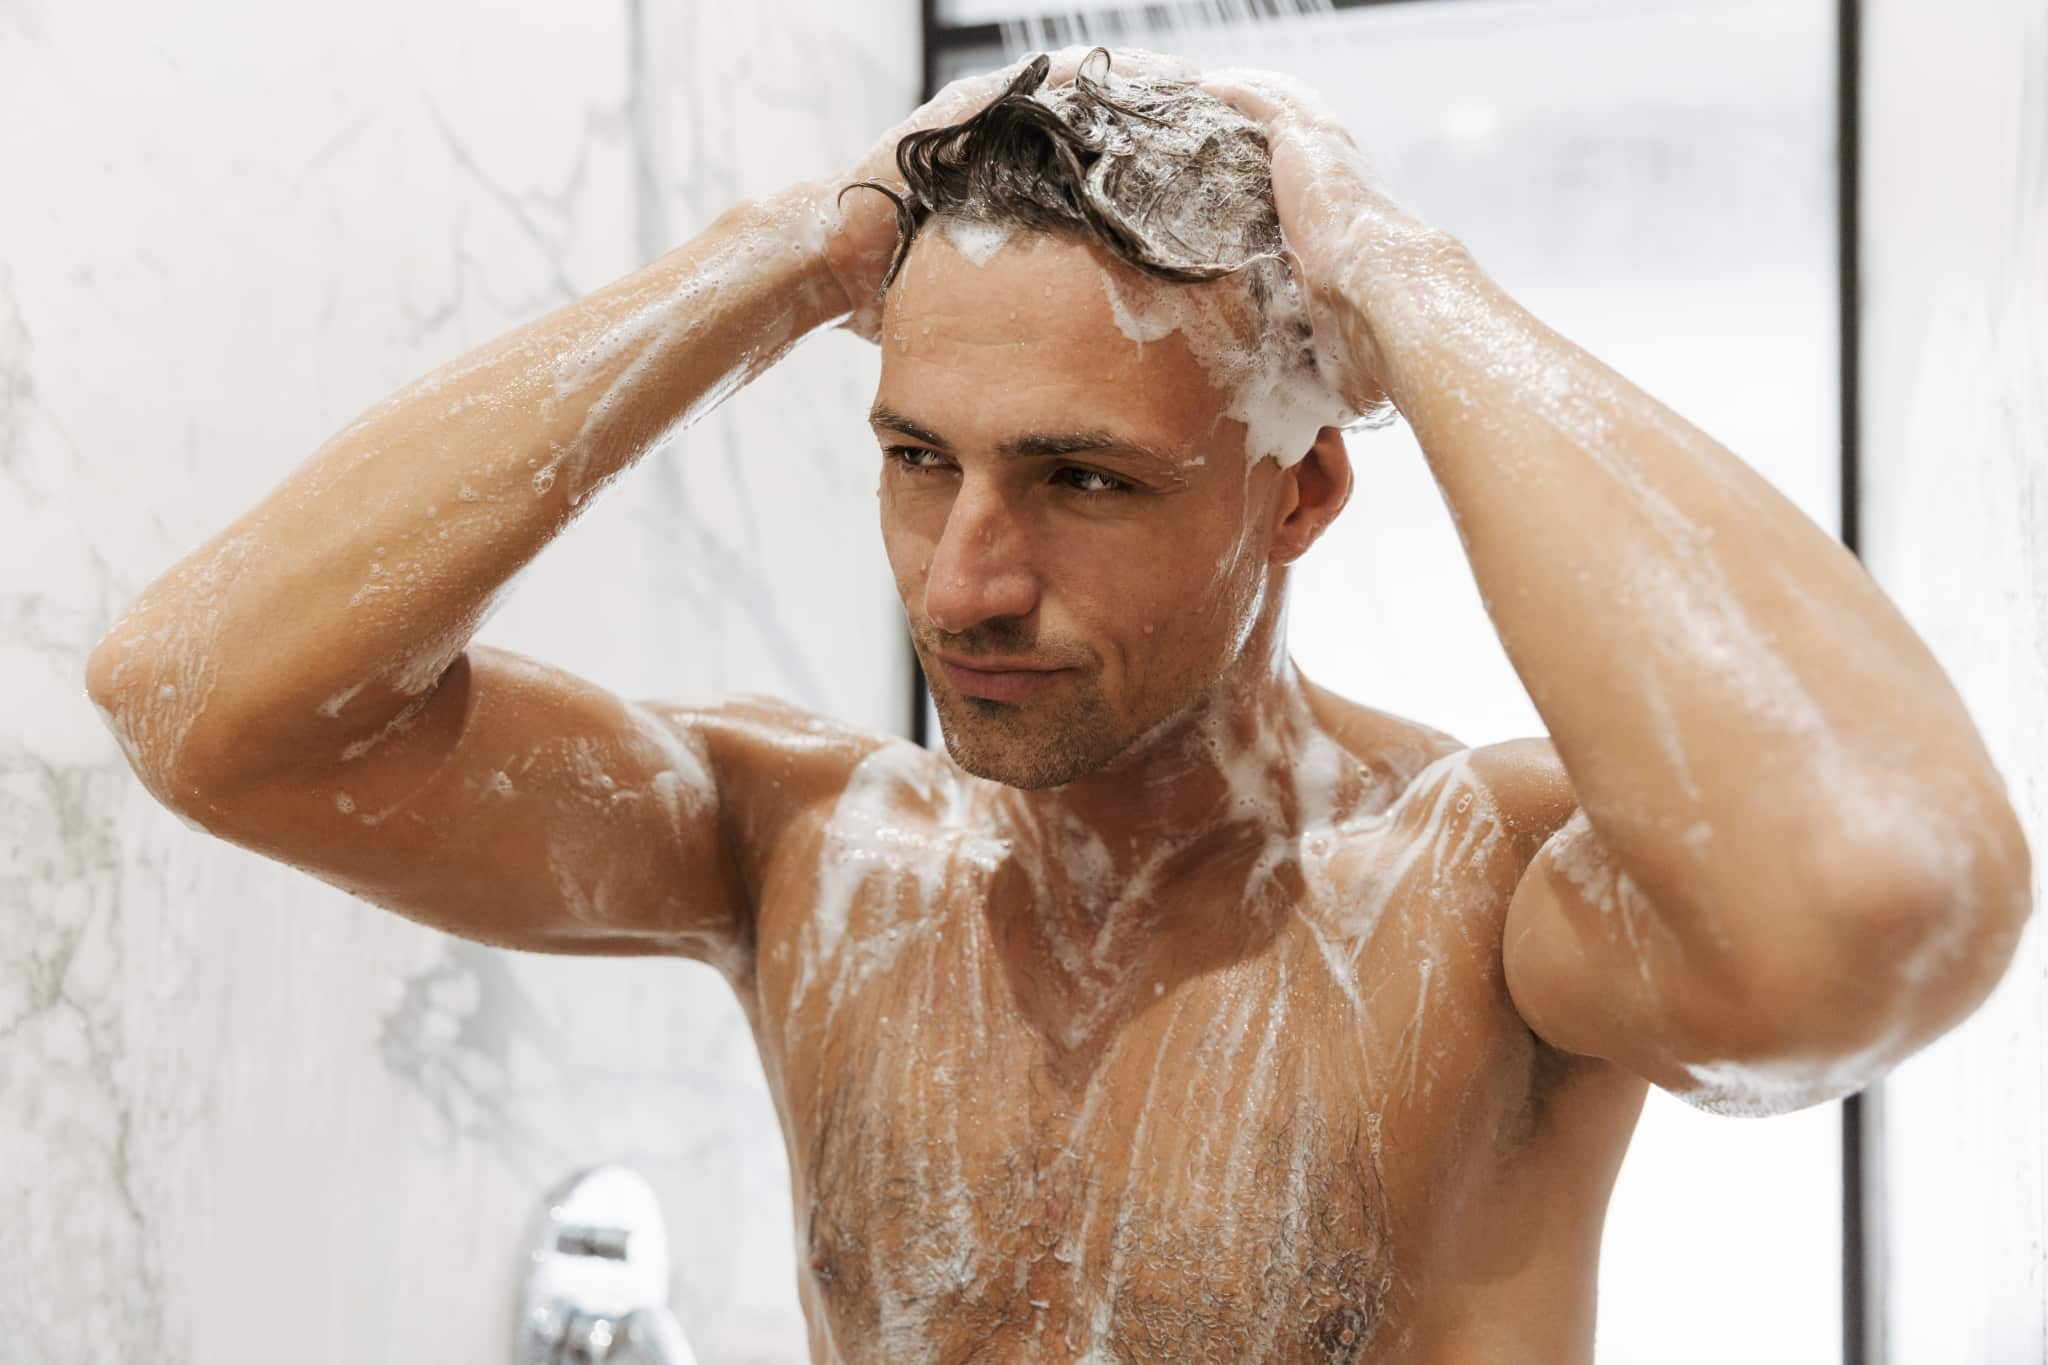 Man having a shower with a shower and washing hair